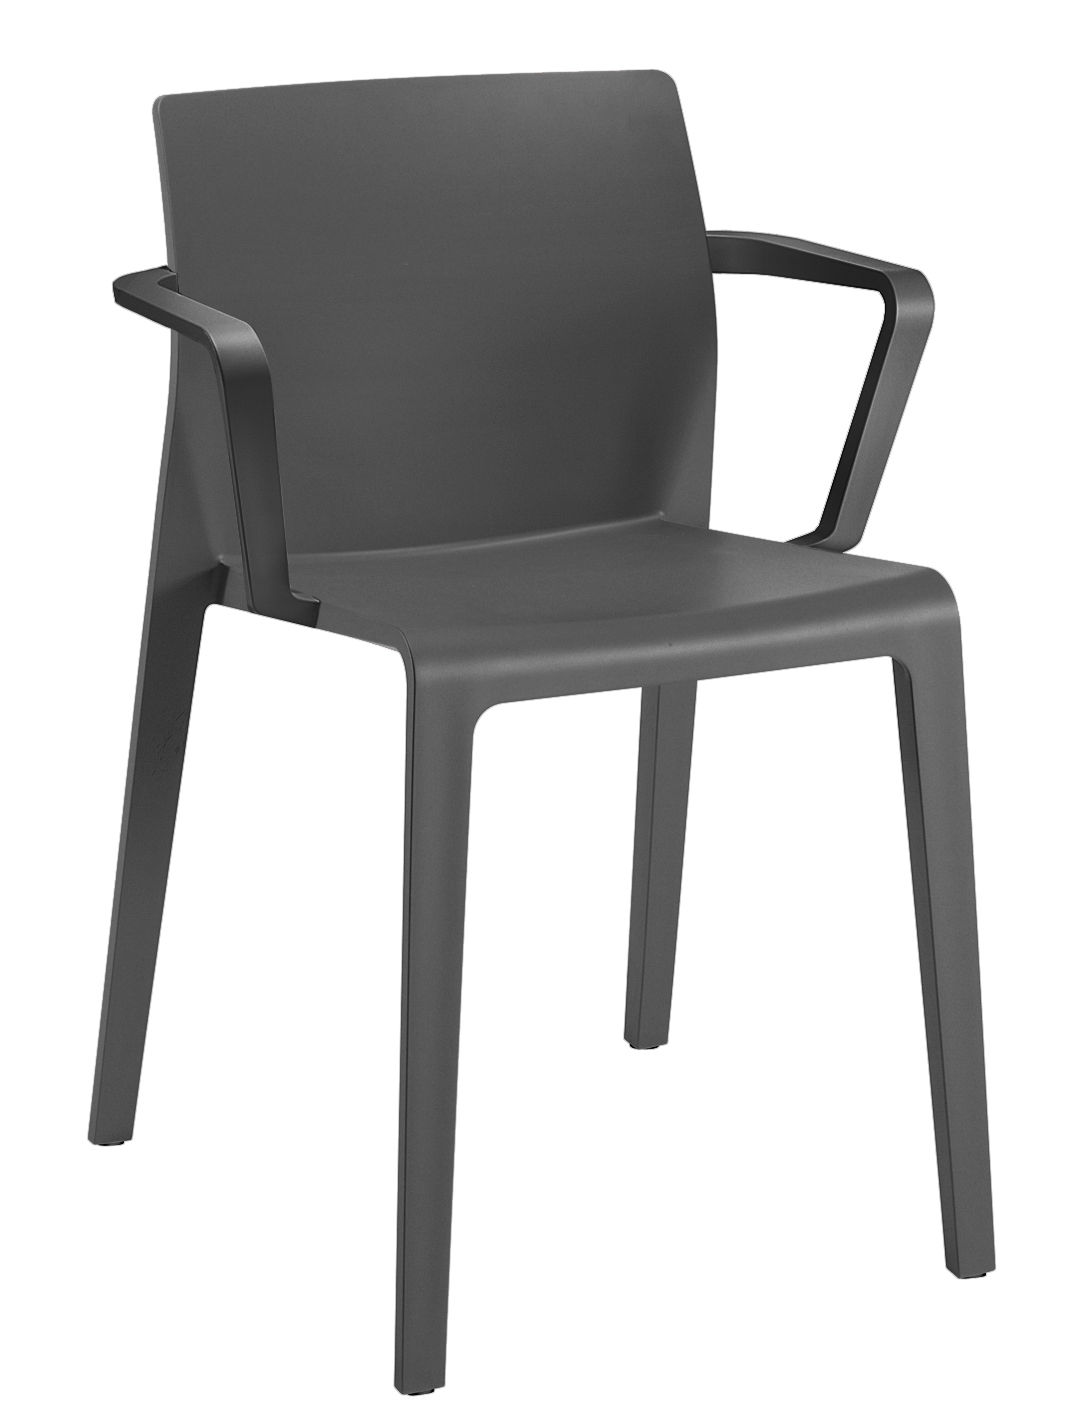 Furniture - Chairs - Juno Stackable armchair by Arper - Anthracite - Polypropylene